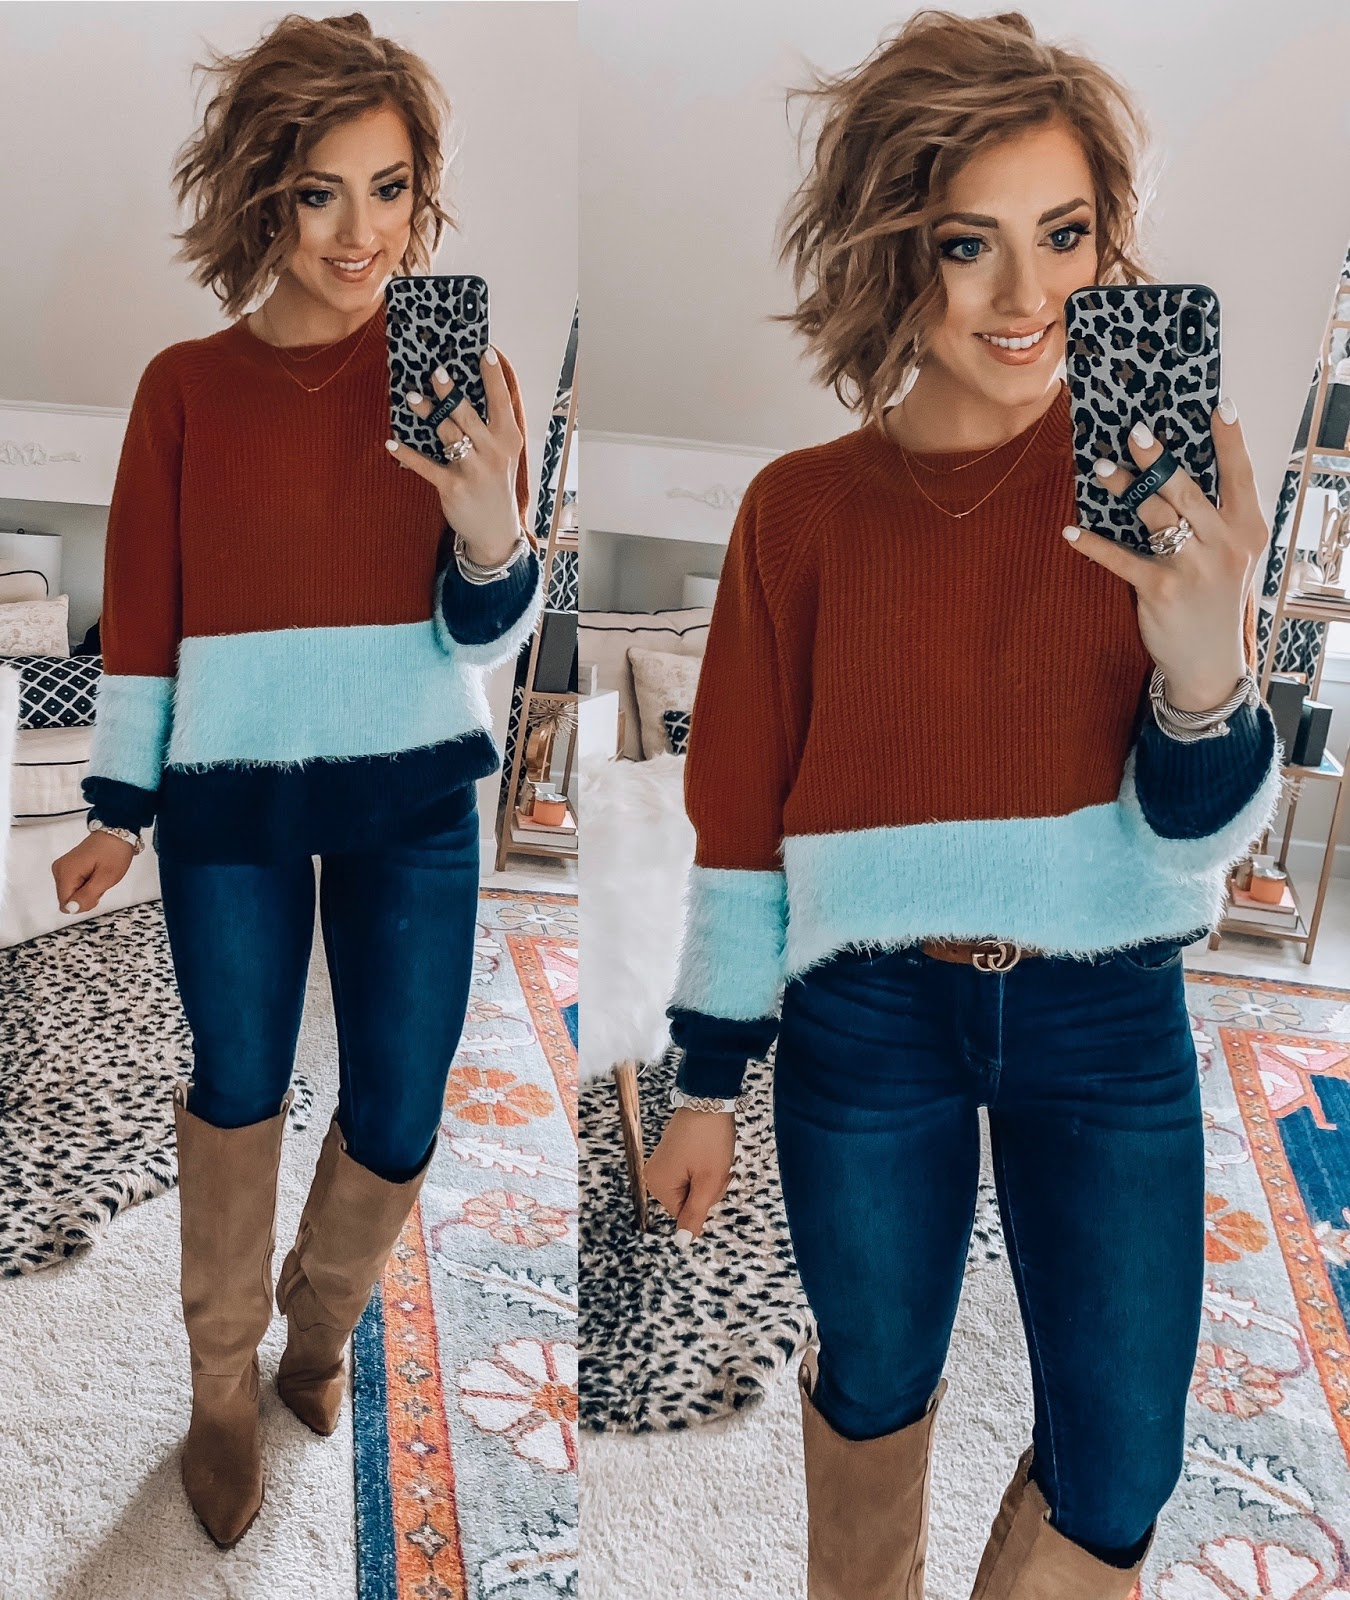 Recent Amazon Finds - Under $30 Brown and Blue Color block Sweater - Something Delightful Blog #AmazonFashion #RecentFinds #Hearts #ValentinesDay #AffordableFashion